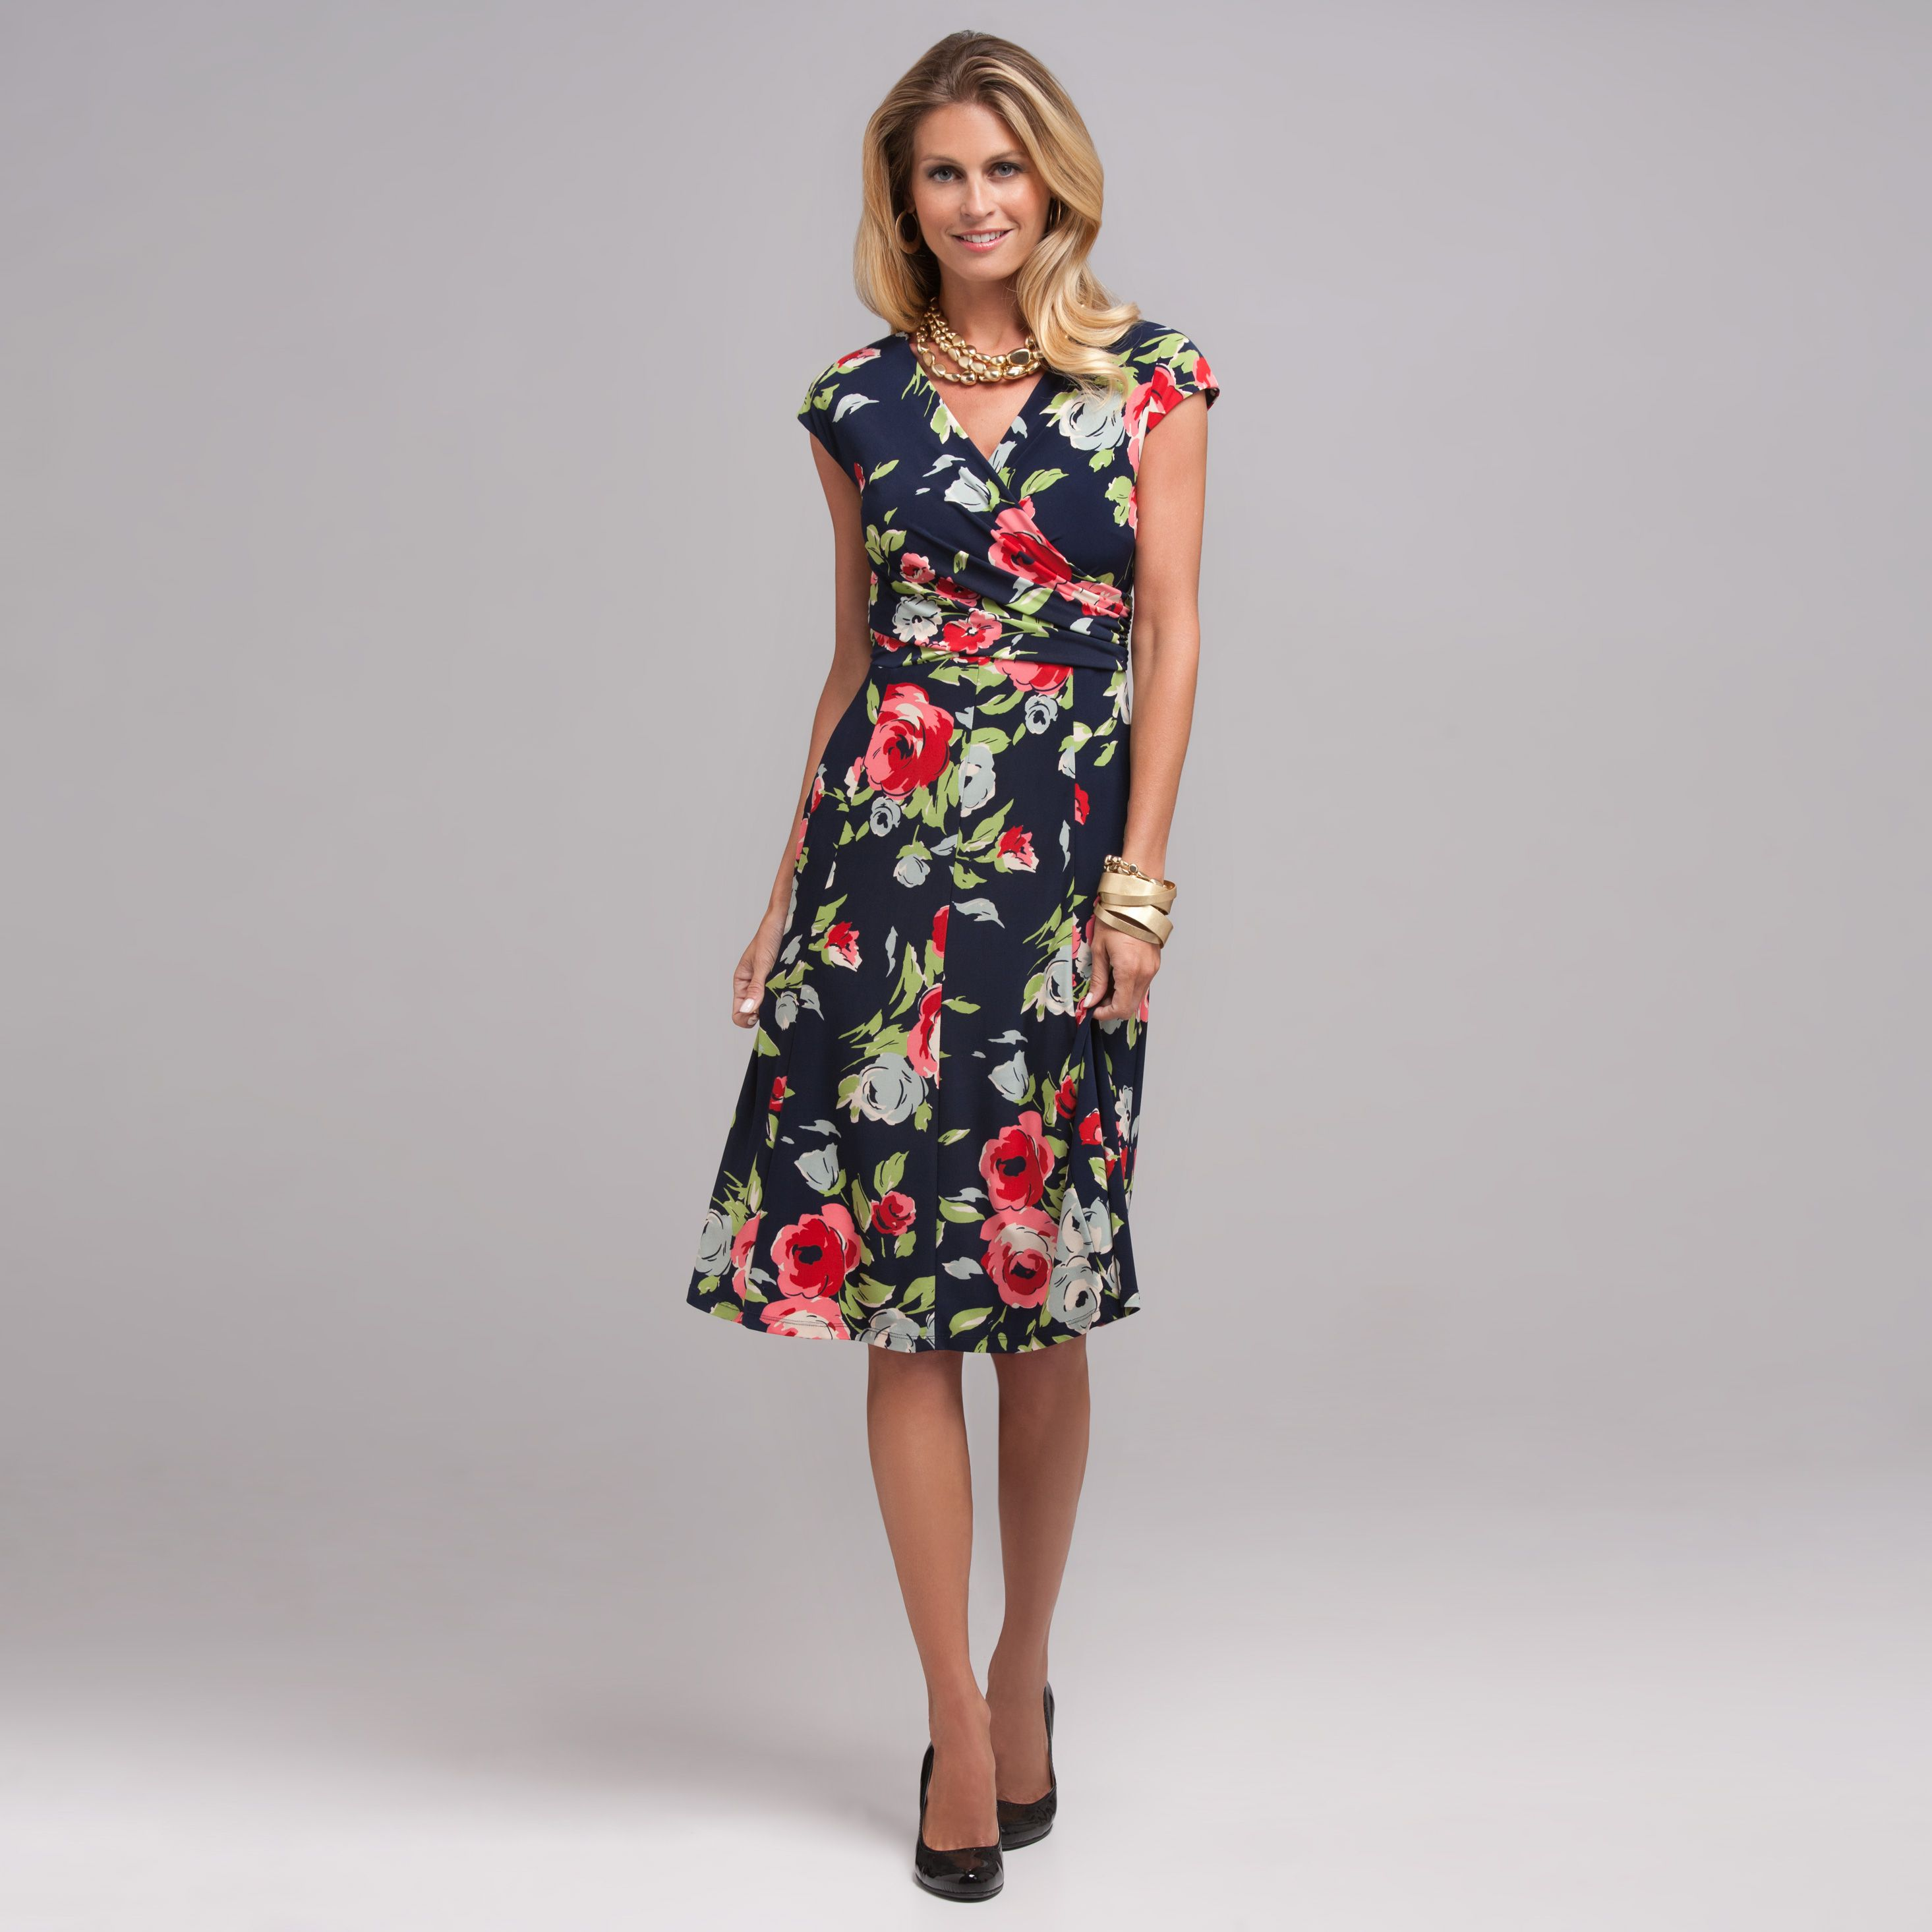 d545d04c18d Dresses that are fitted on top and flare on bottom are a flattering choice  for most older women.